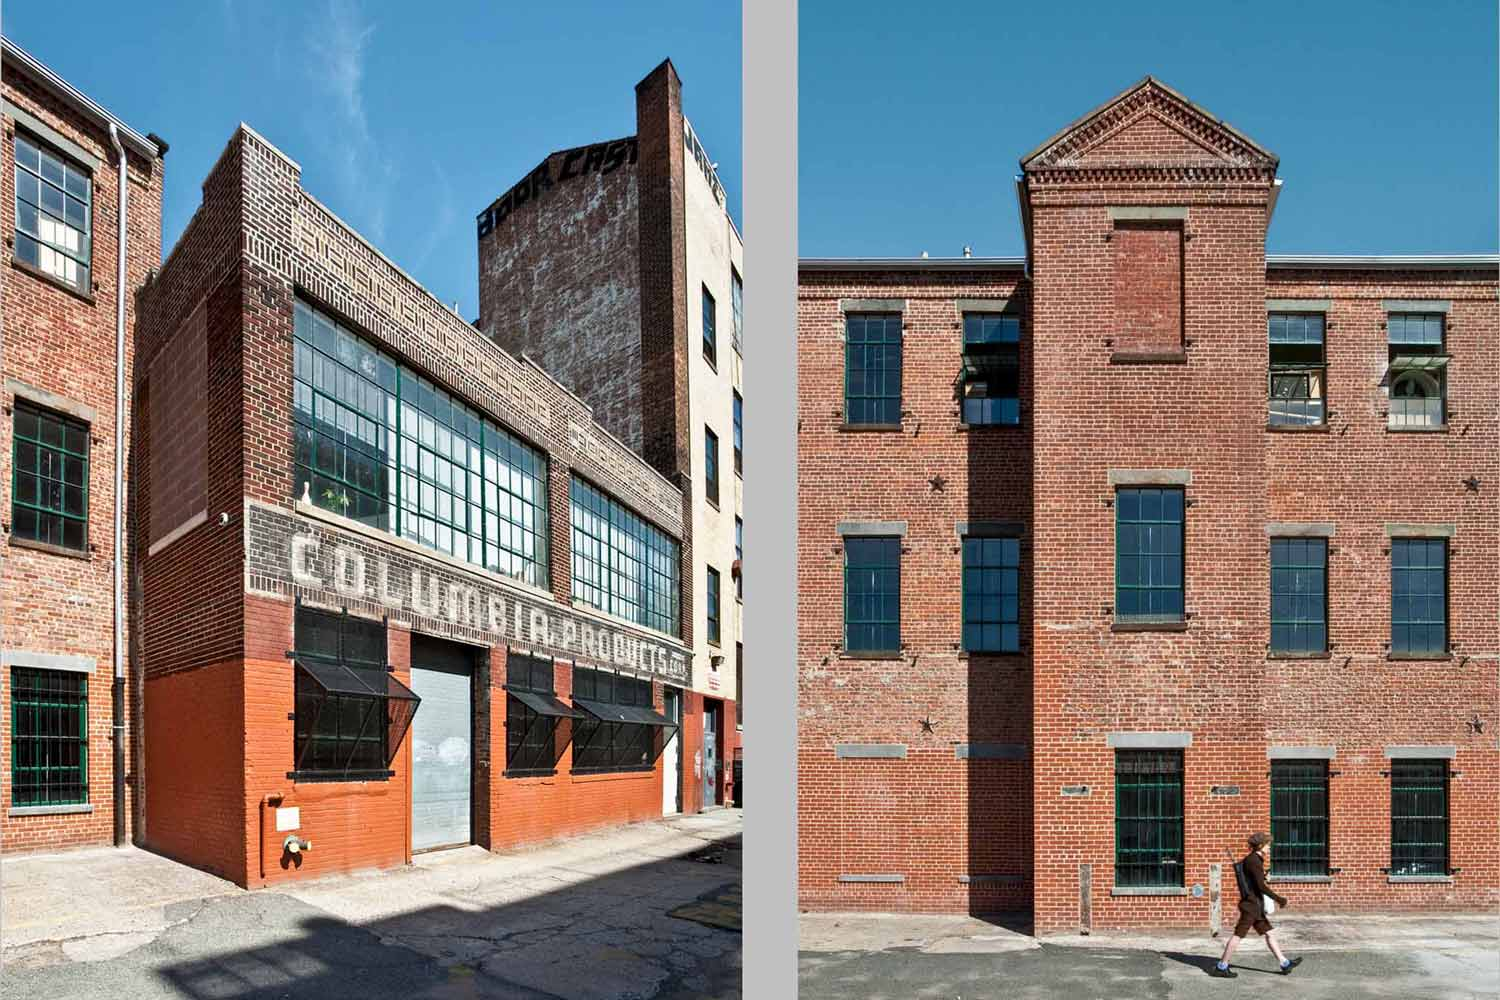 McKibbin Street Industrial Center won two historic preservation awards. Project by OCV Architects.